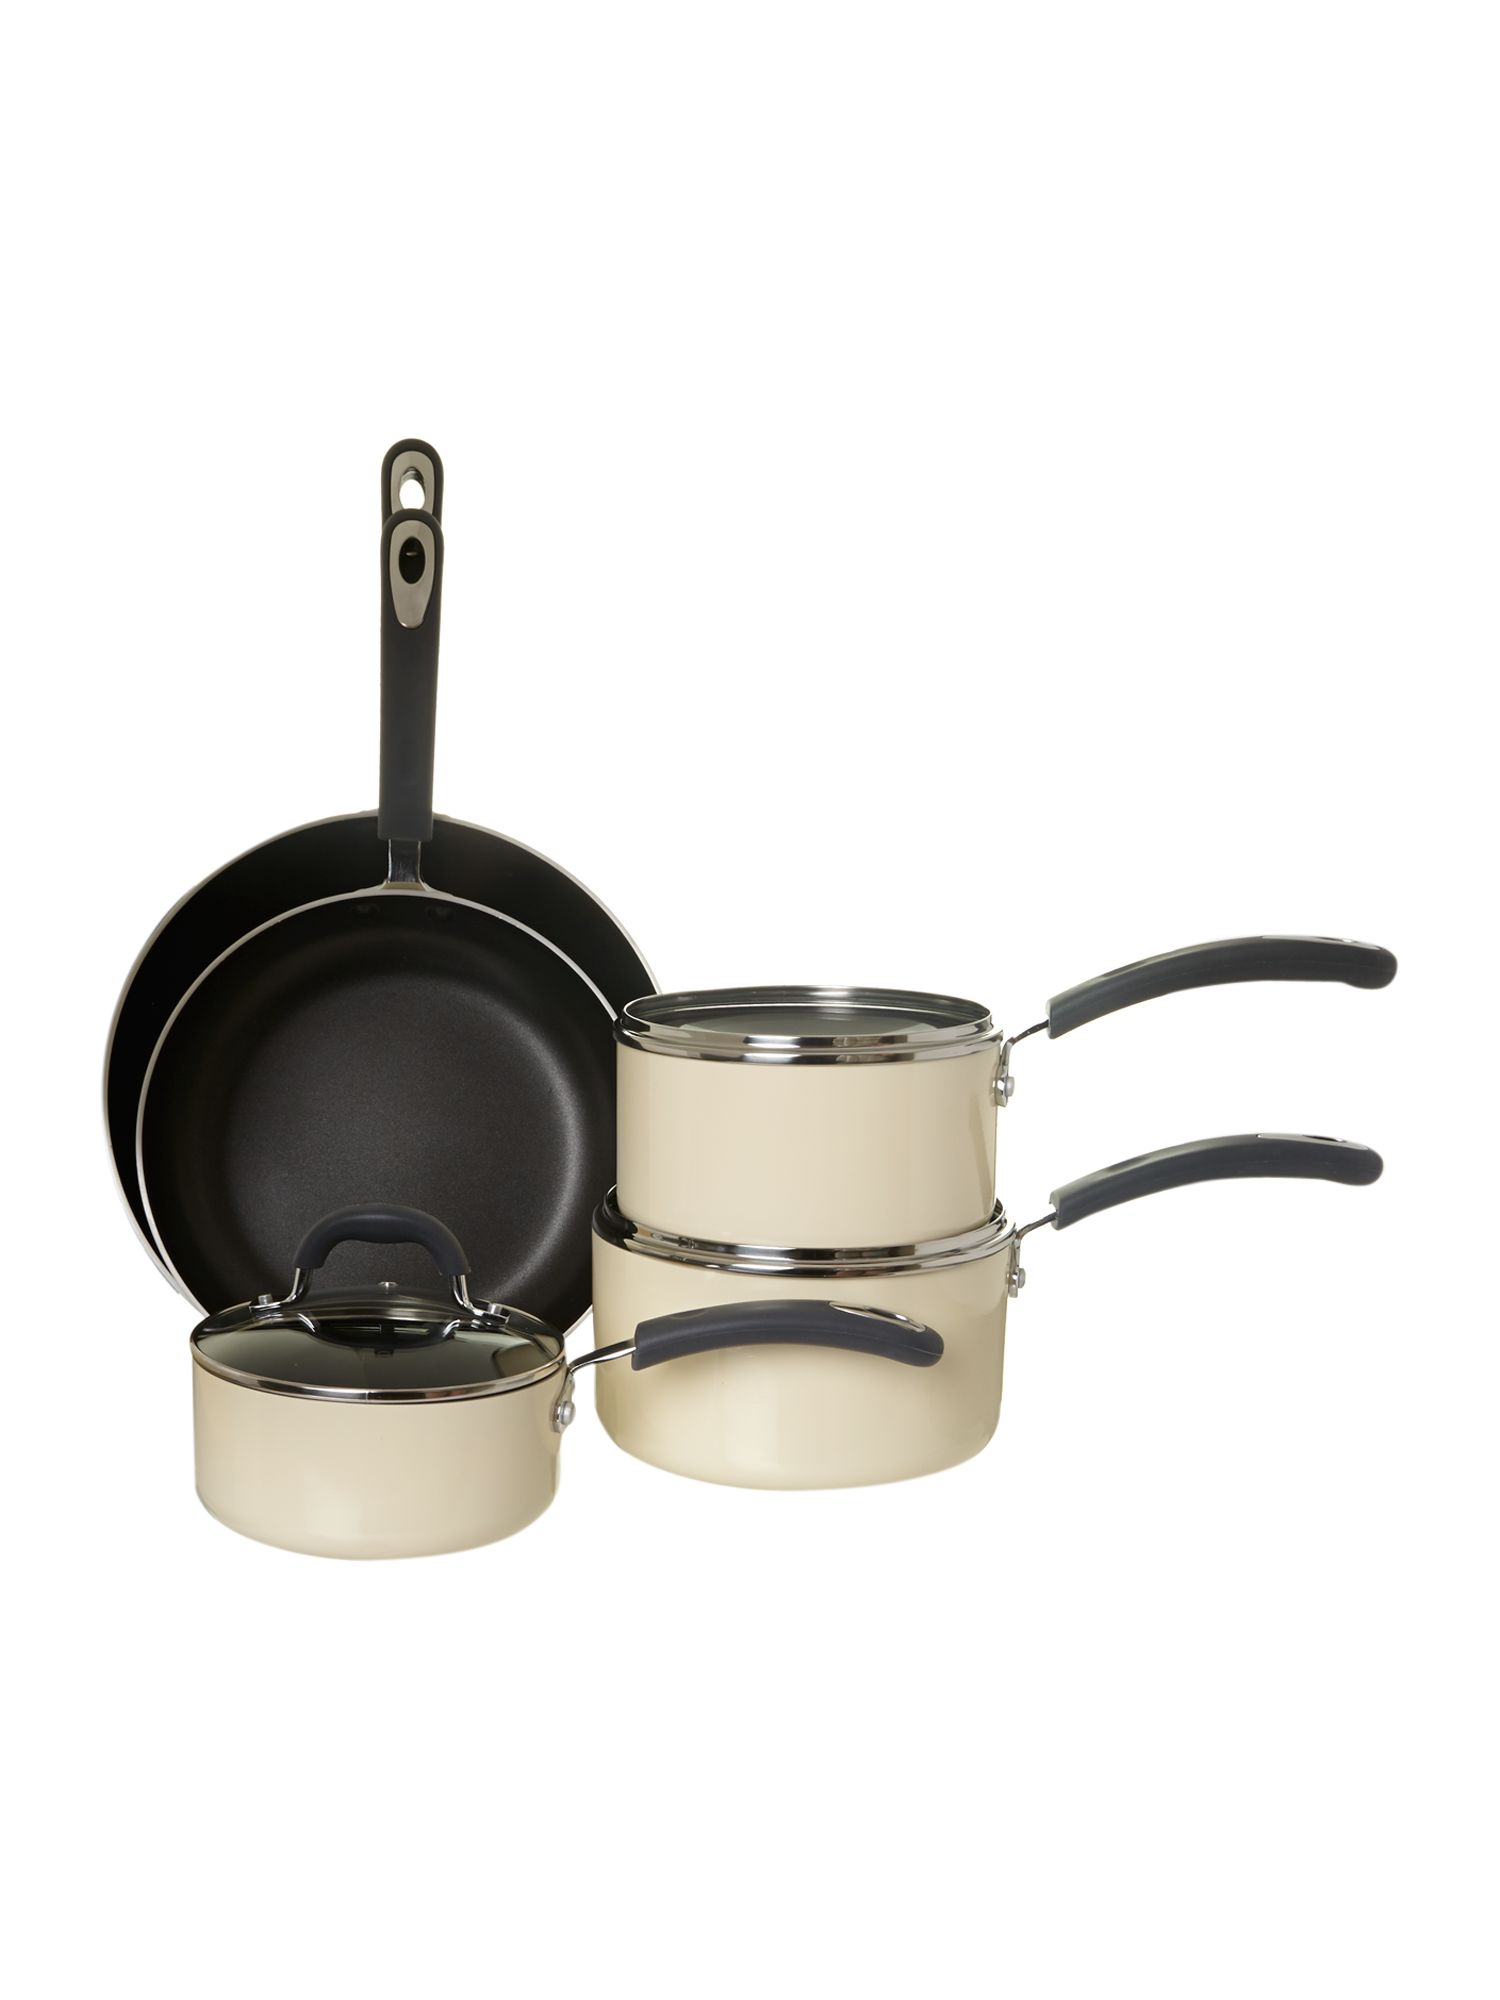 Principle cookware range in cream